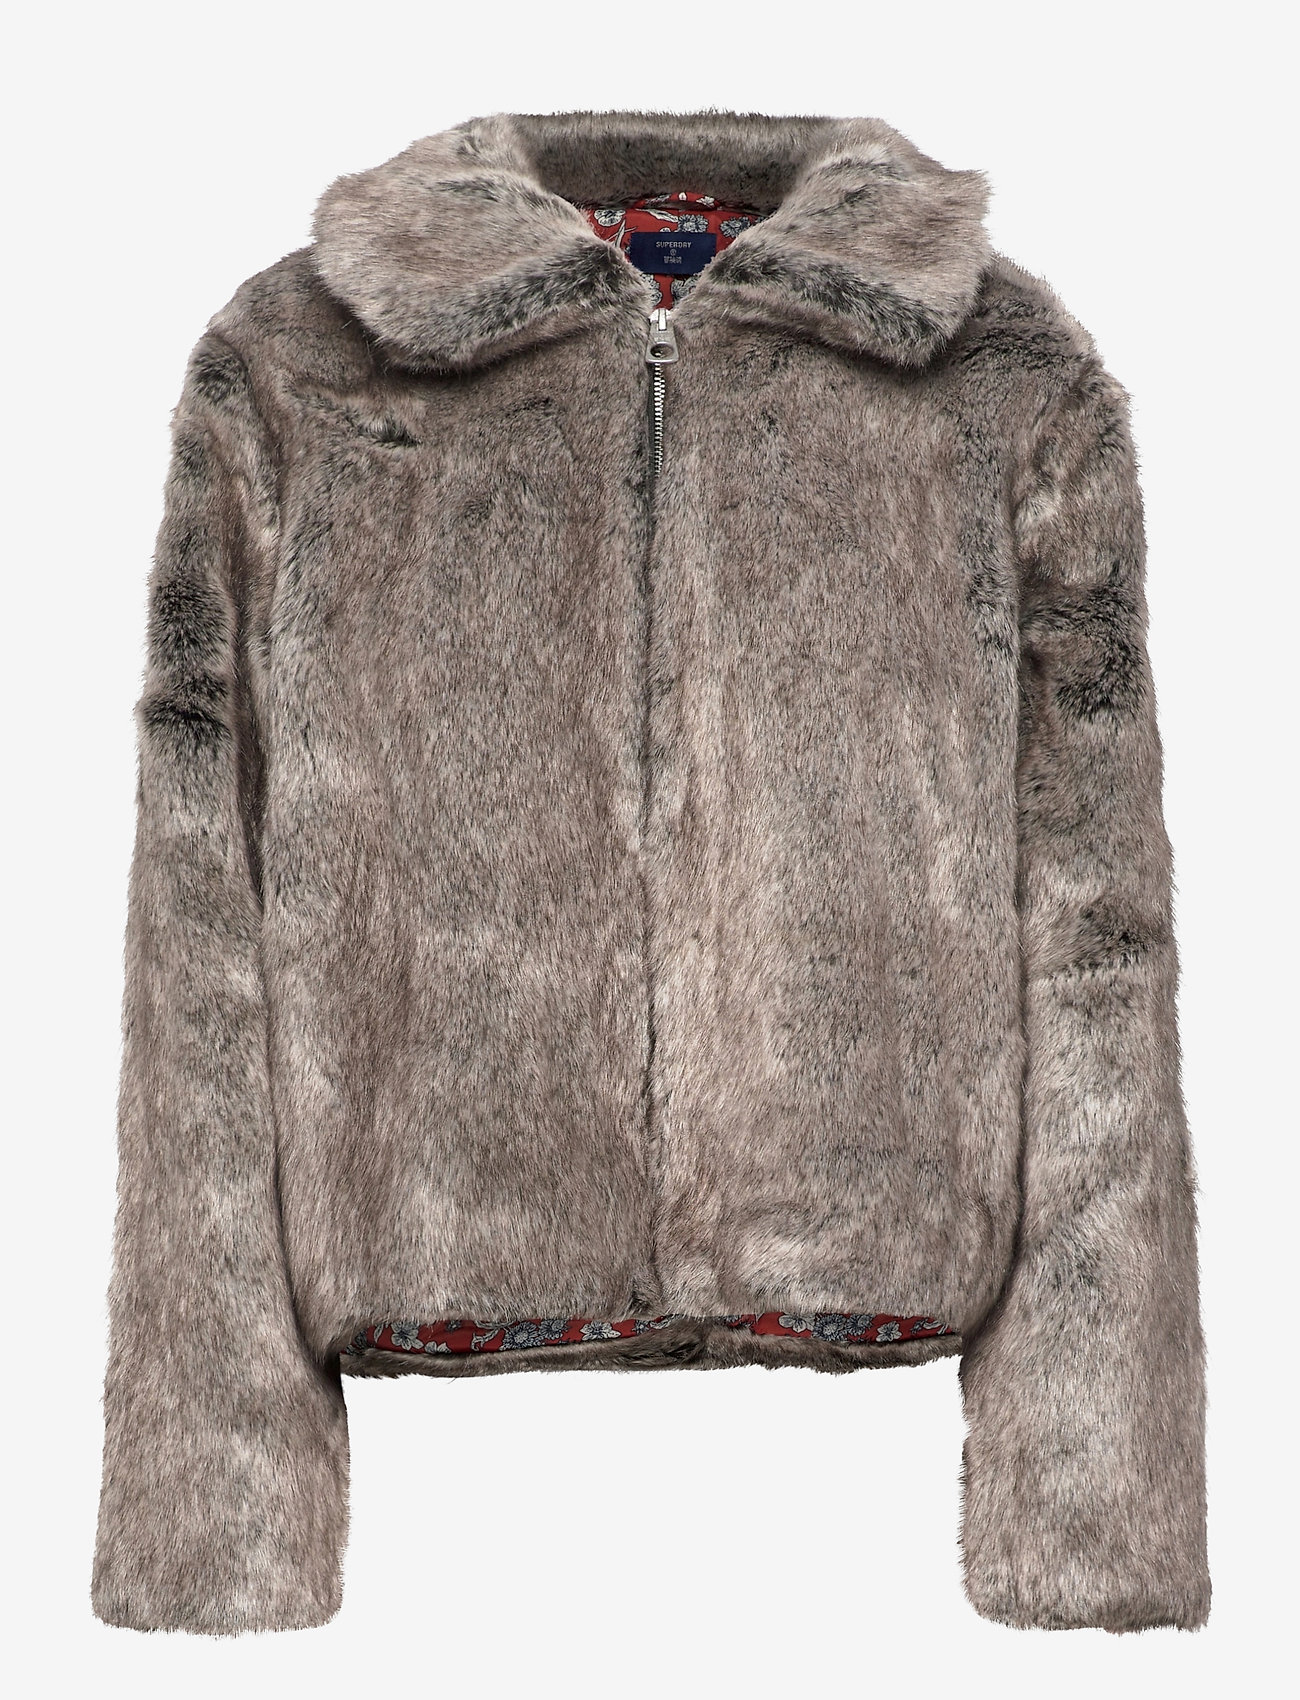 Superdry - Boho Faux Fur Jacket - faux fur - mink - 1